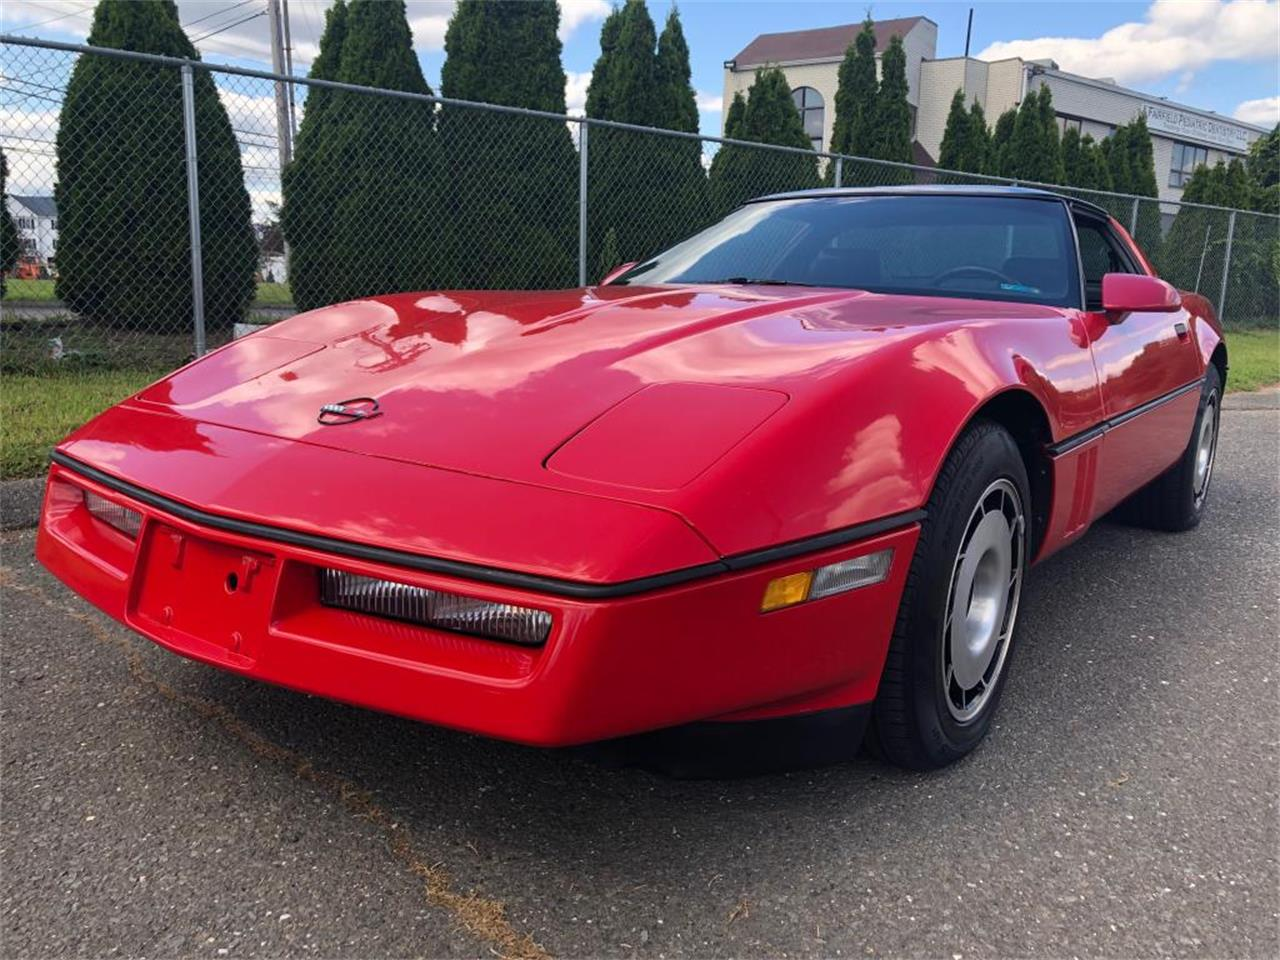 1985 Chevrolet Corvette for sale in Milford City, CT – photo 12